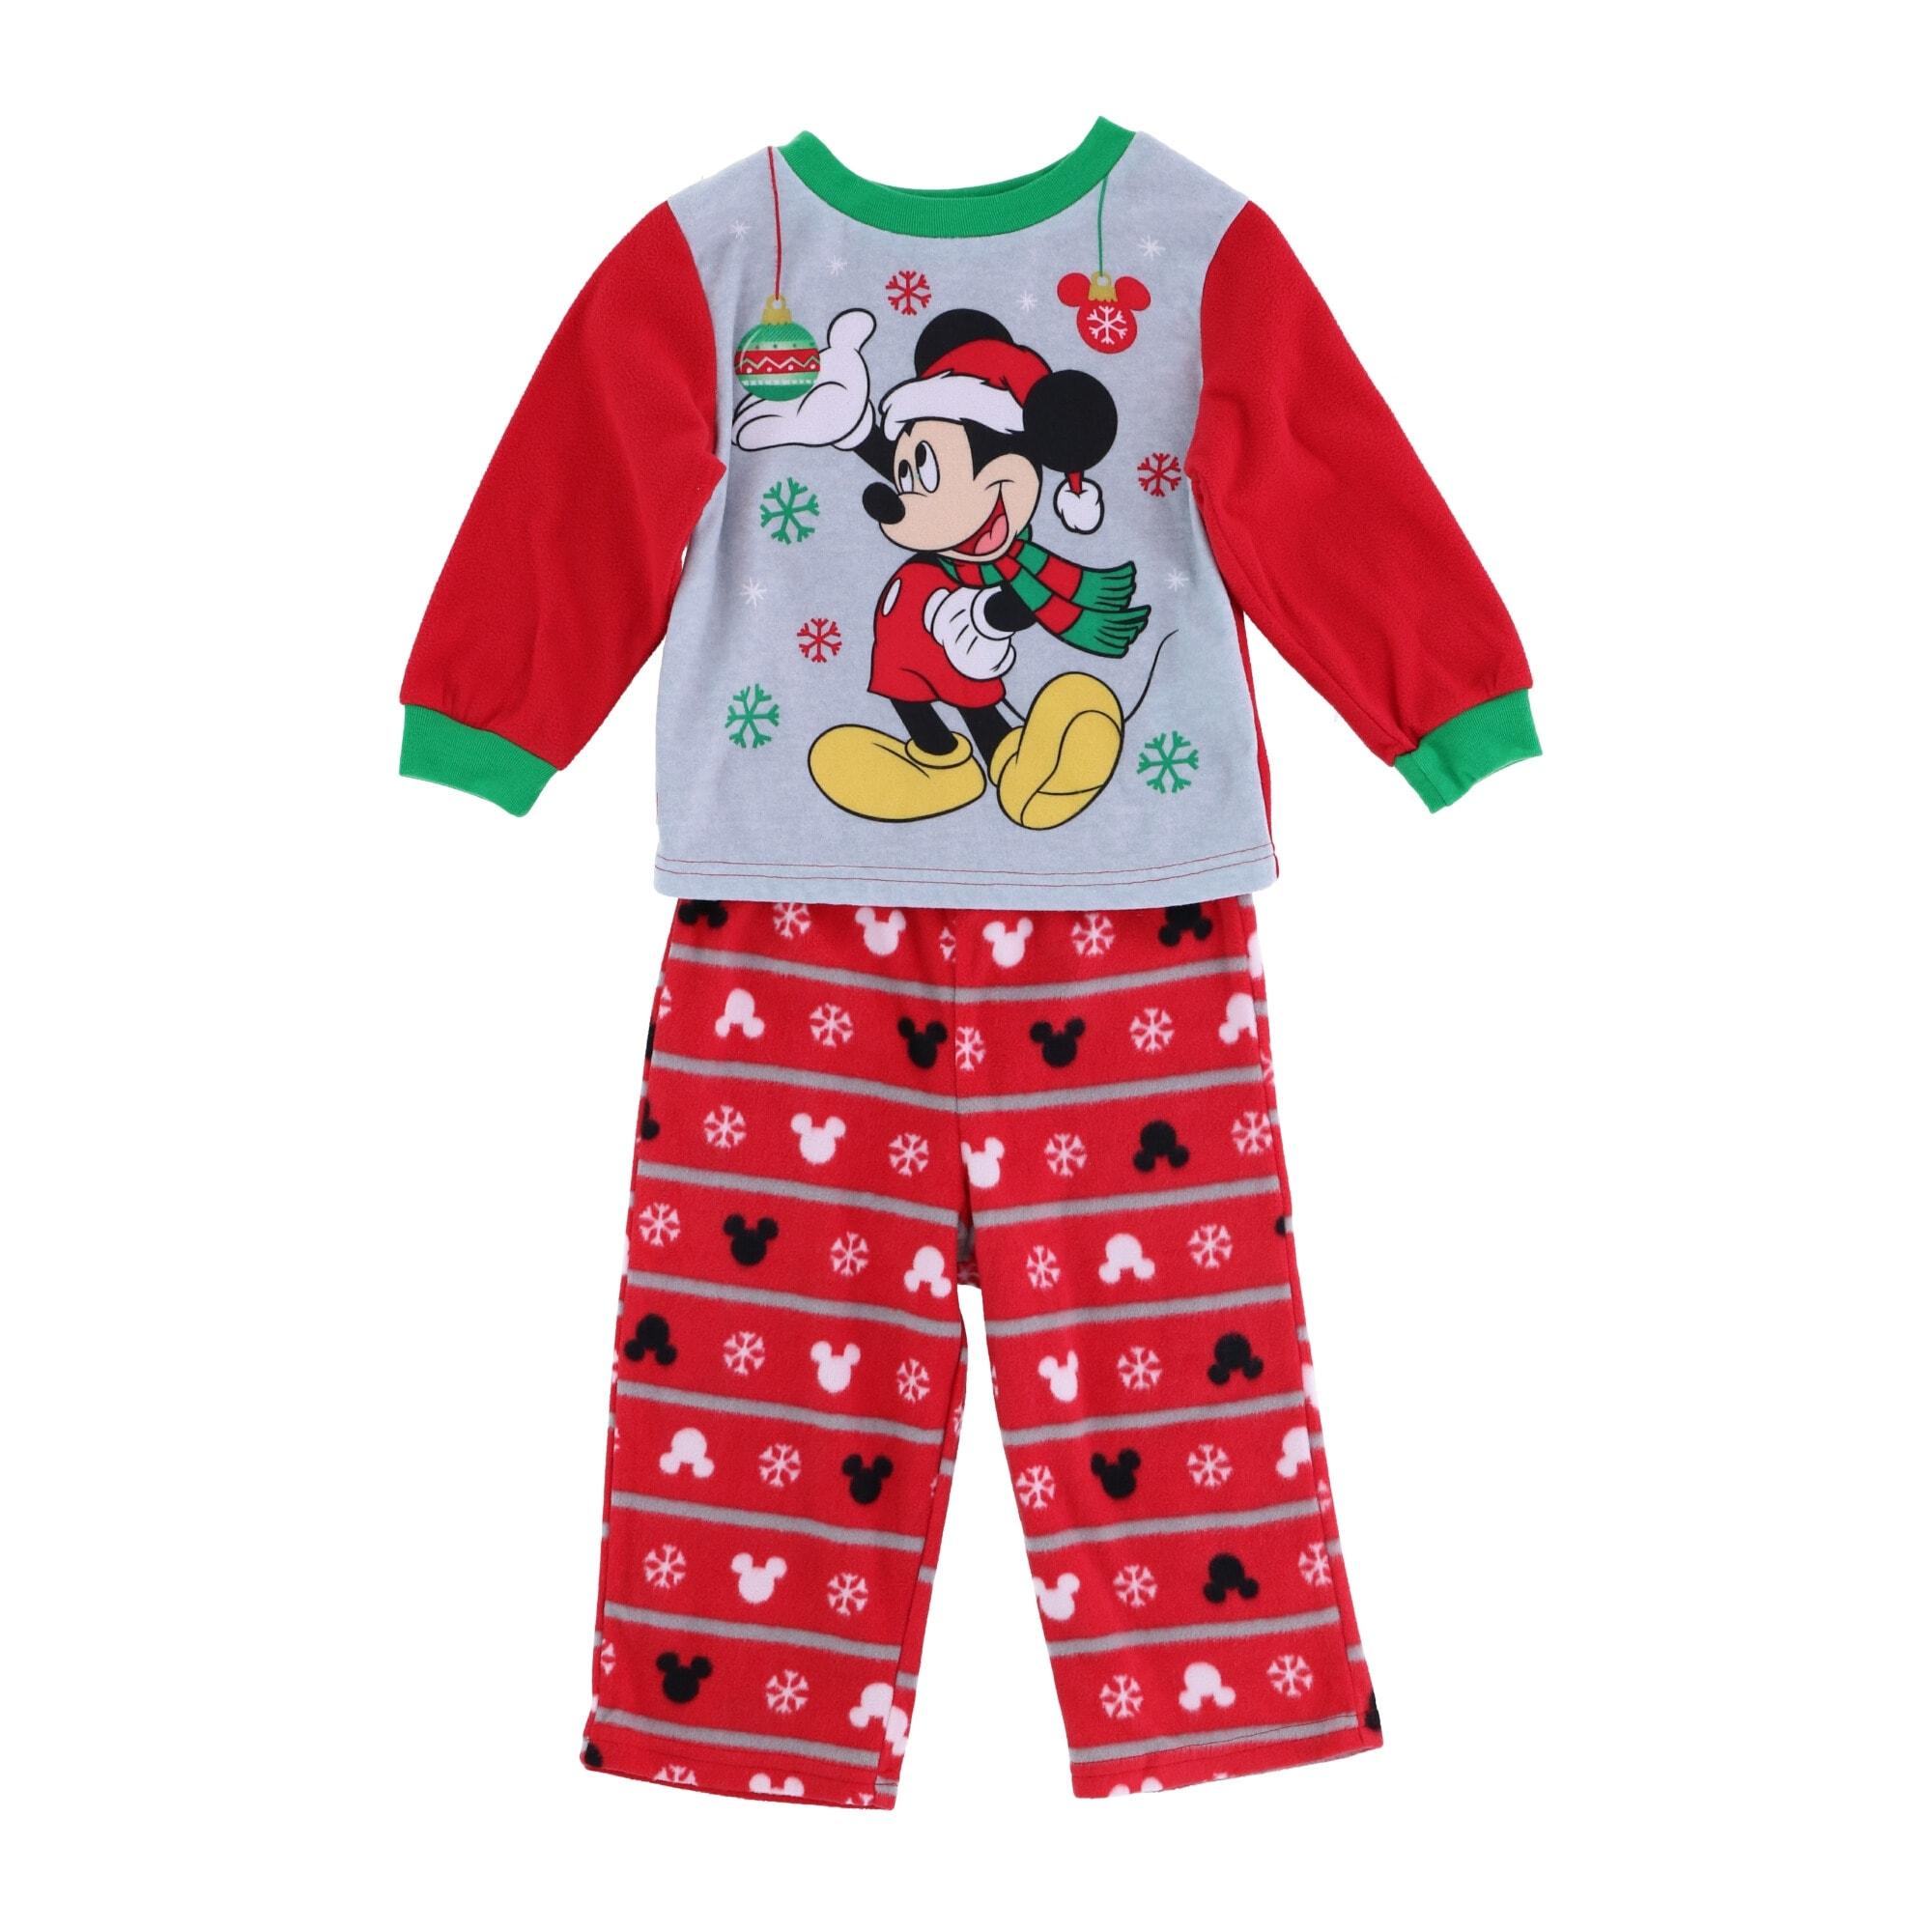 Disney Mickey Mouse two pieces pajamas sets size 3T